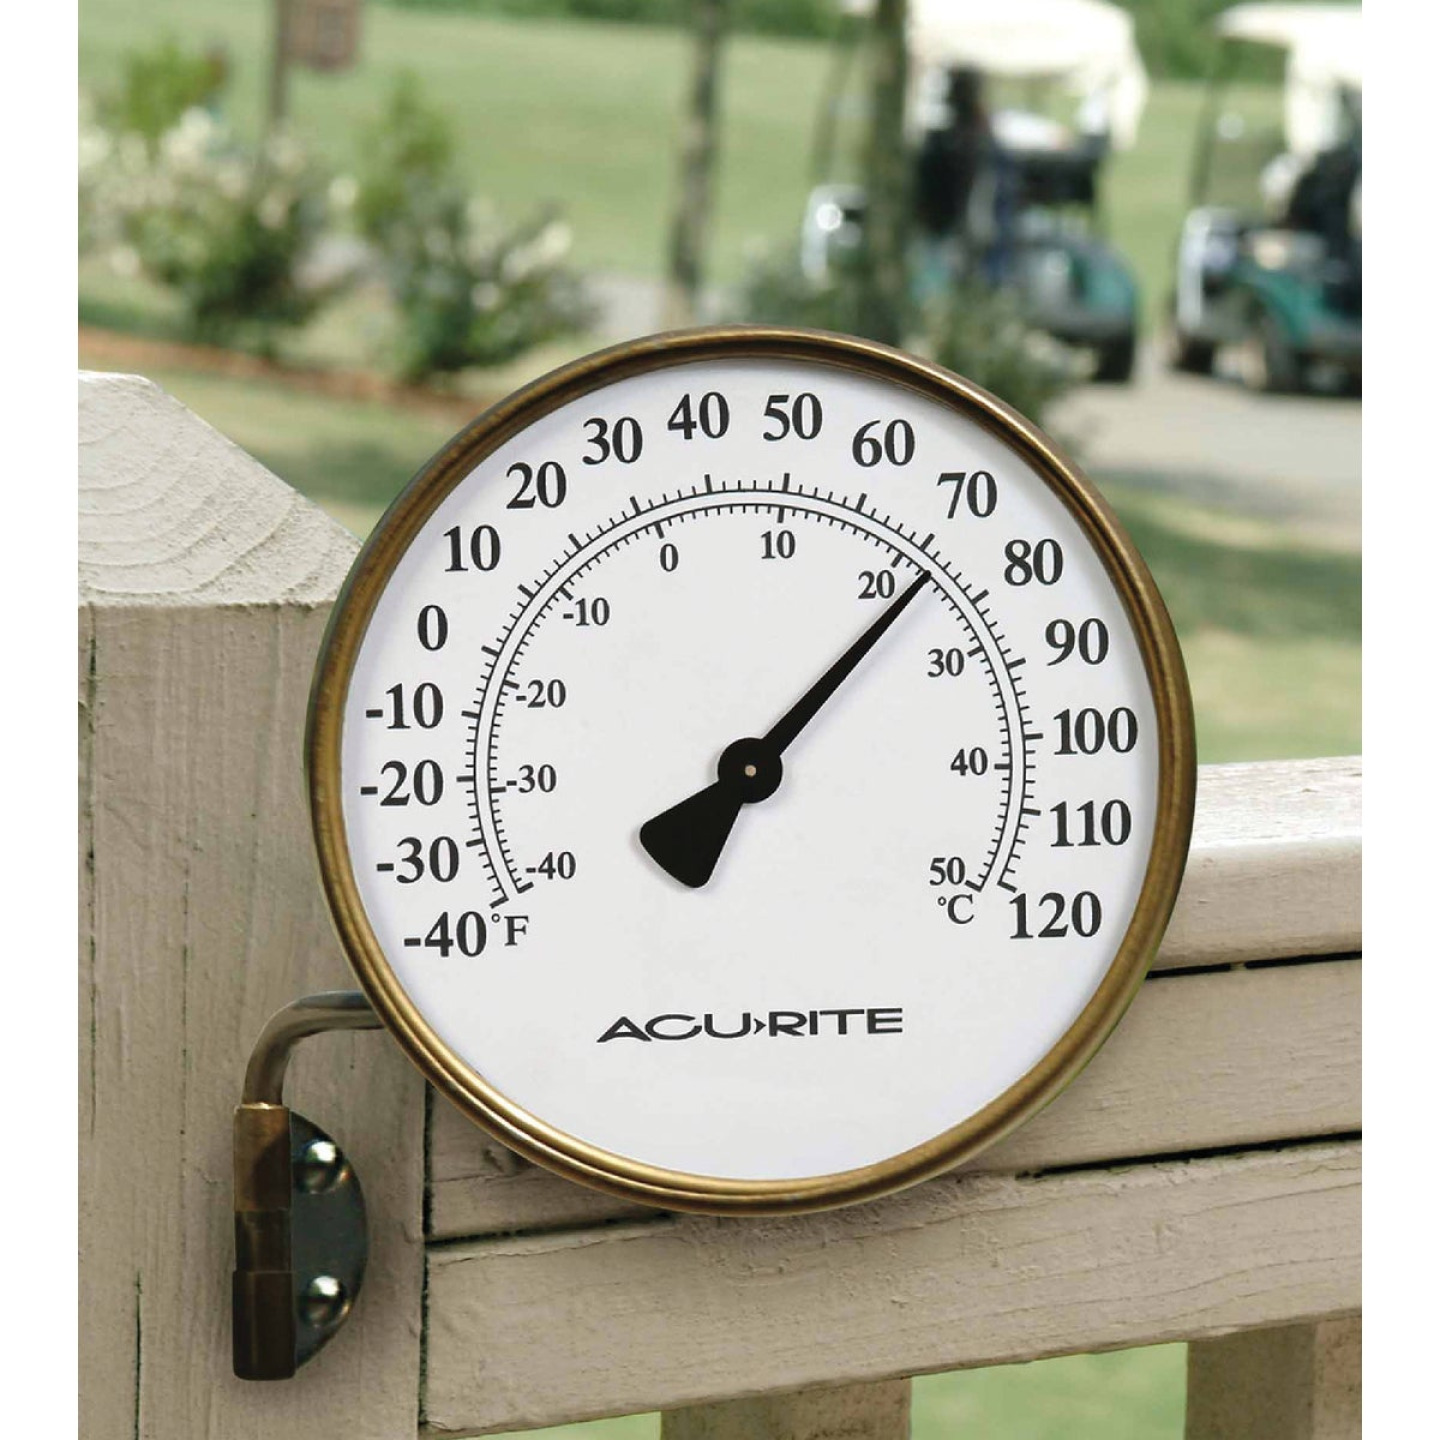 Acurite 4 In. Dia. Metal Dial Indoor & Outdoor Thermometer Image 1